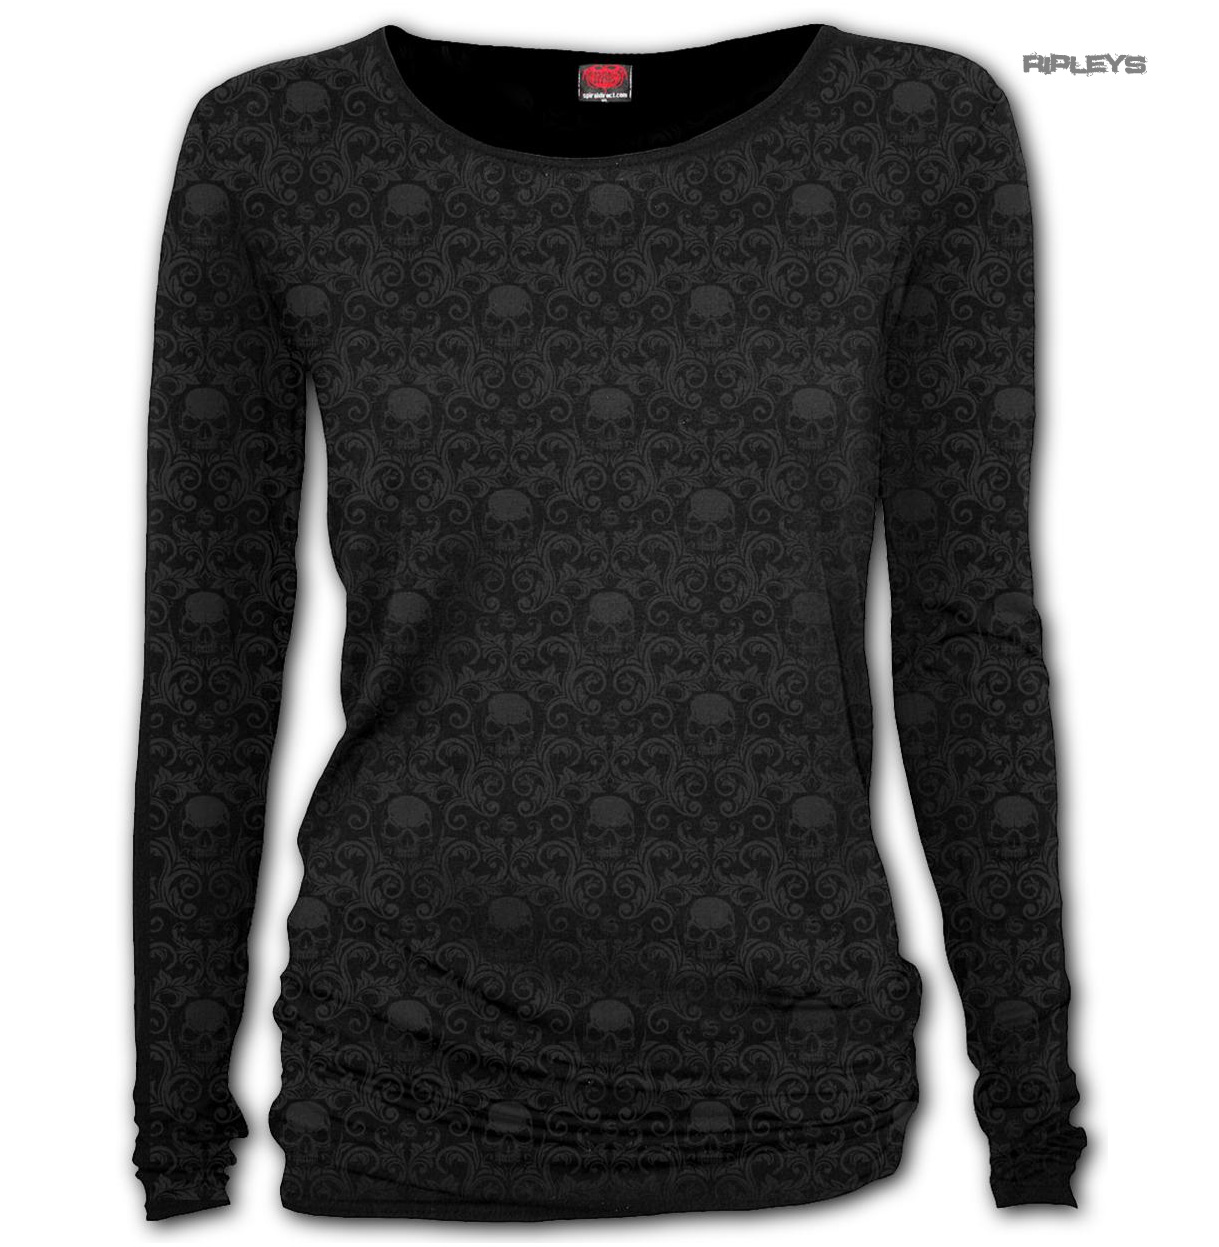 Spiral-Gothic-Elegance-Ladies-Blk-Goth-Scroll-IMPRESSION-L-Sleeve-Top-All-Sizes thumbnail 8